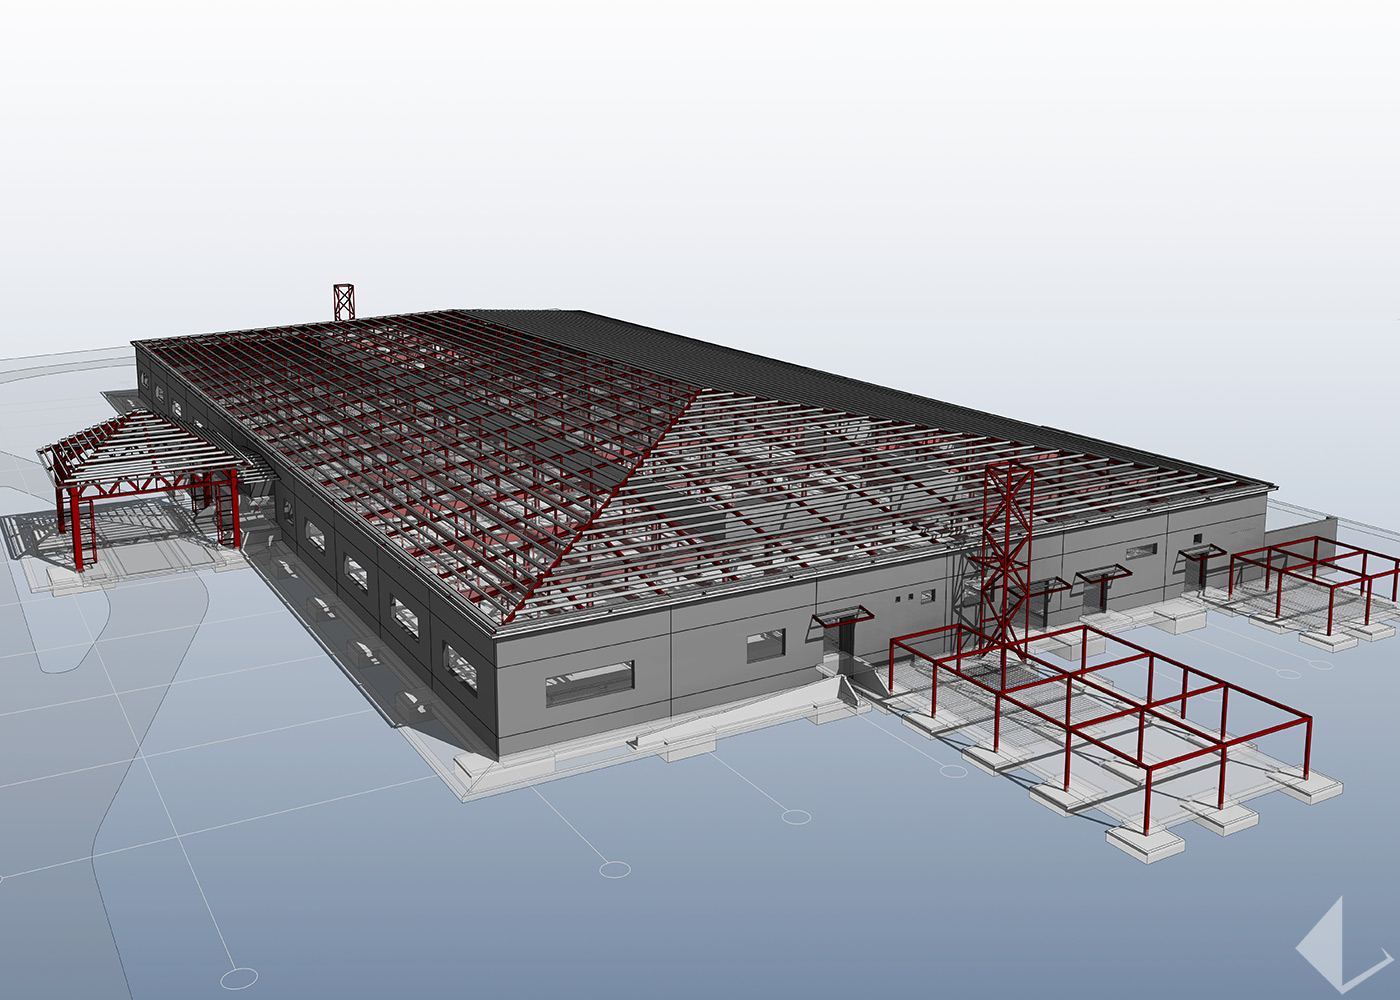 Wheatstone Project LNG Plant - Non Process Infrastructure Buildings : Image 5